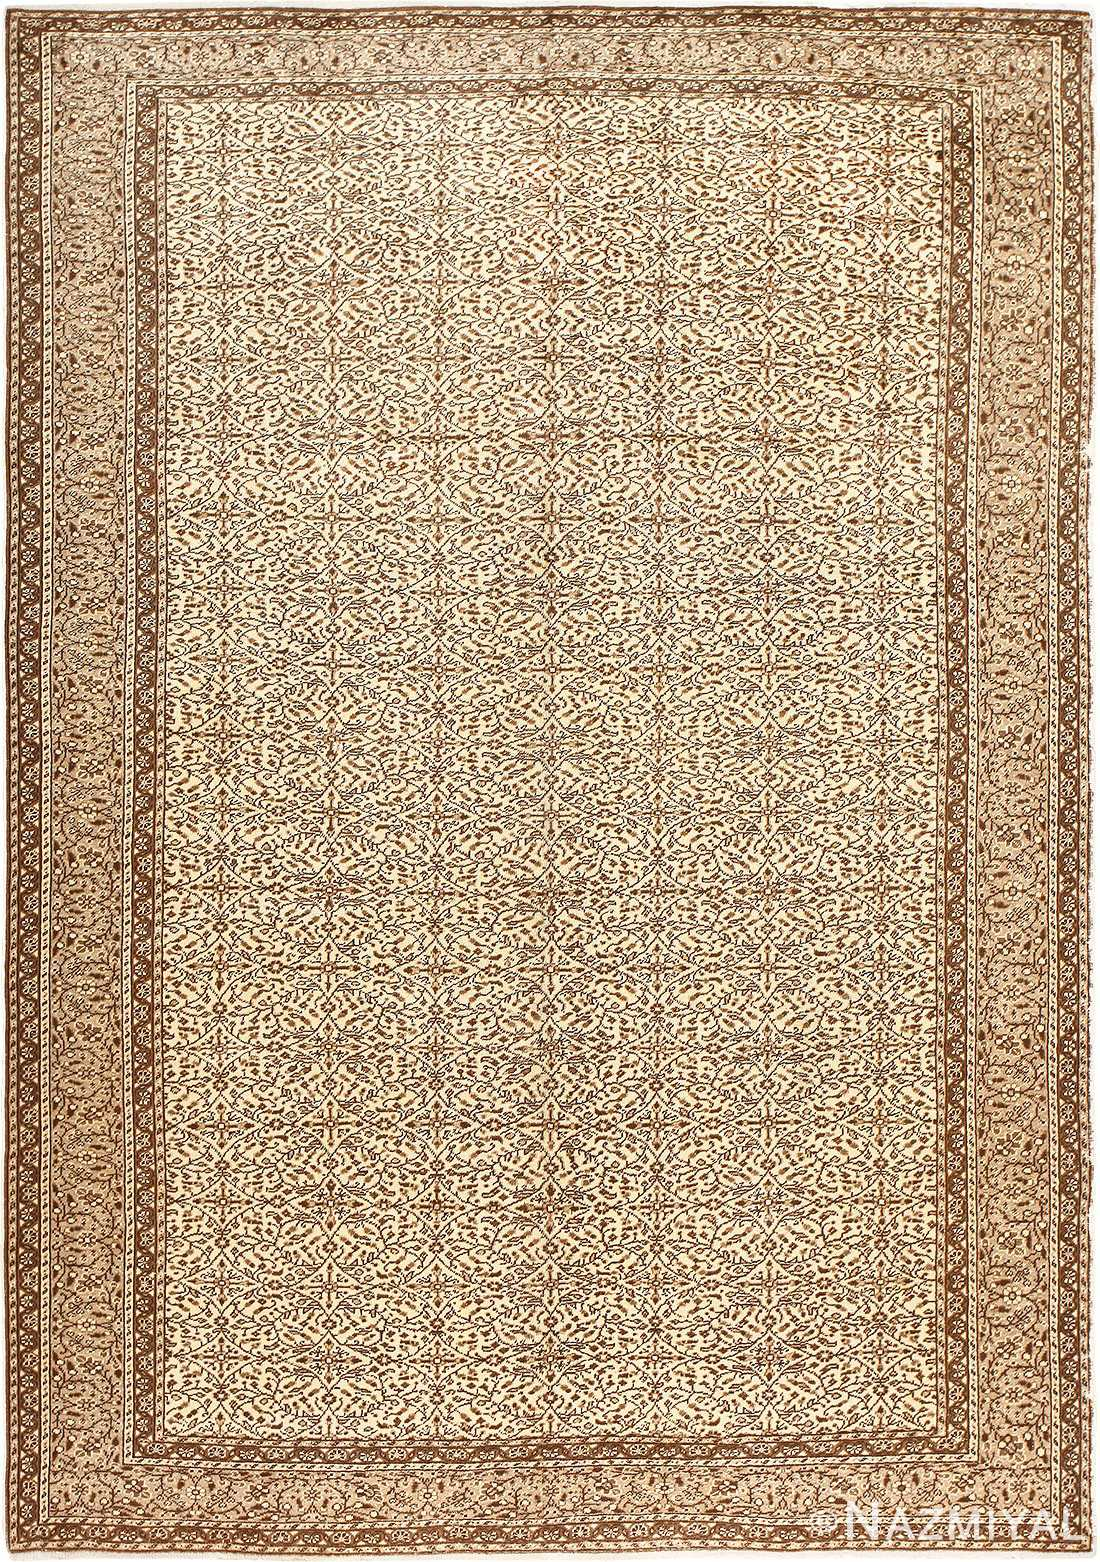 Fine Decorative Antique Turkish Sivas Rug 50185 by Nazmiyal